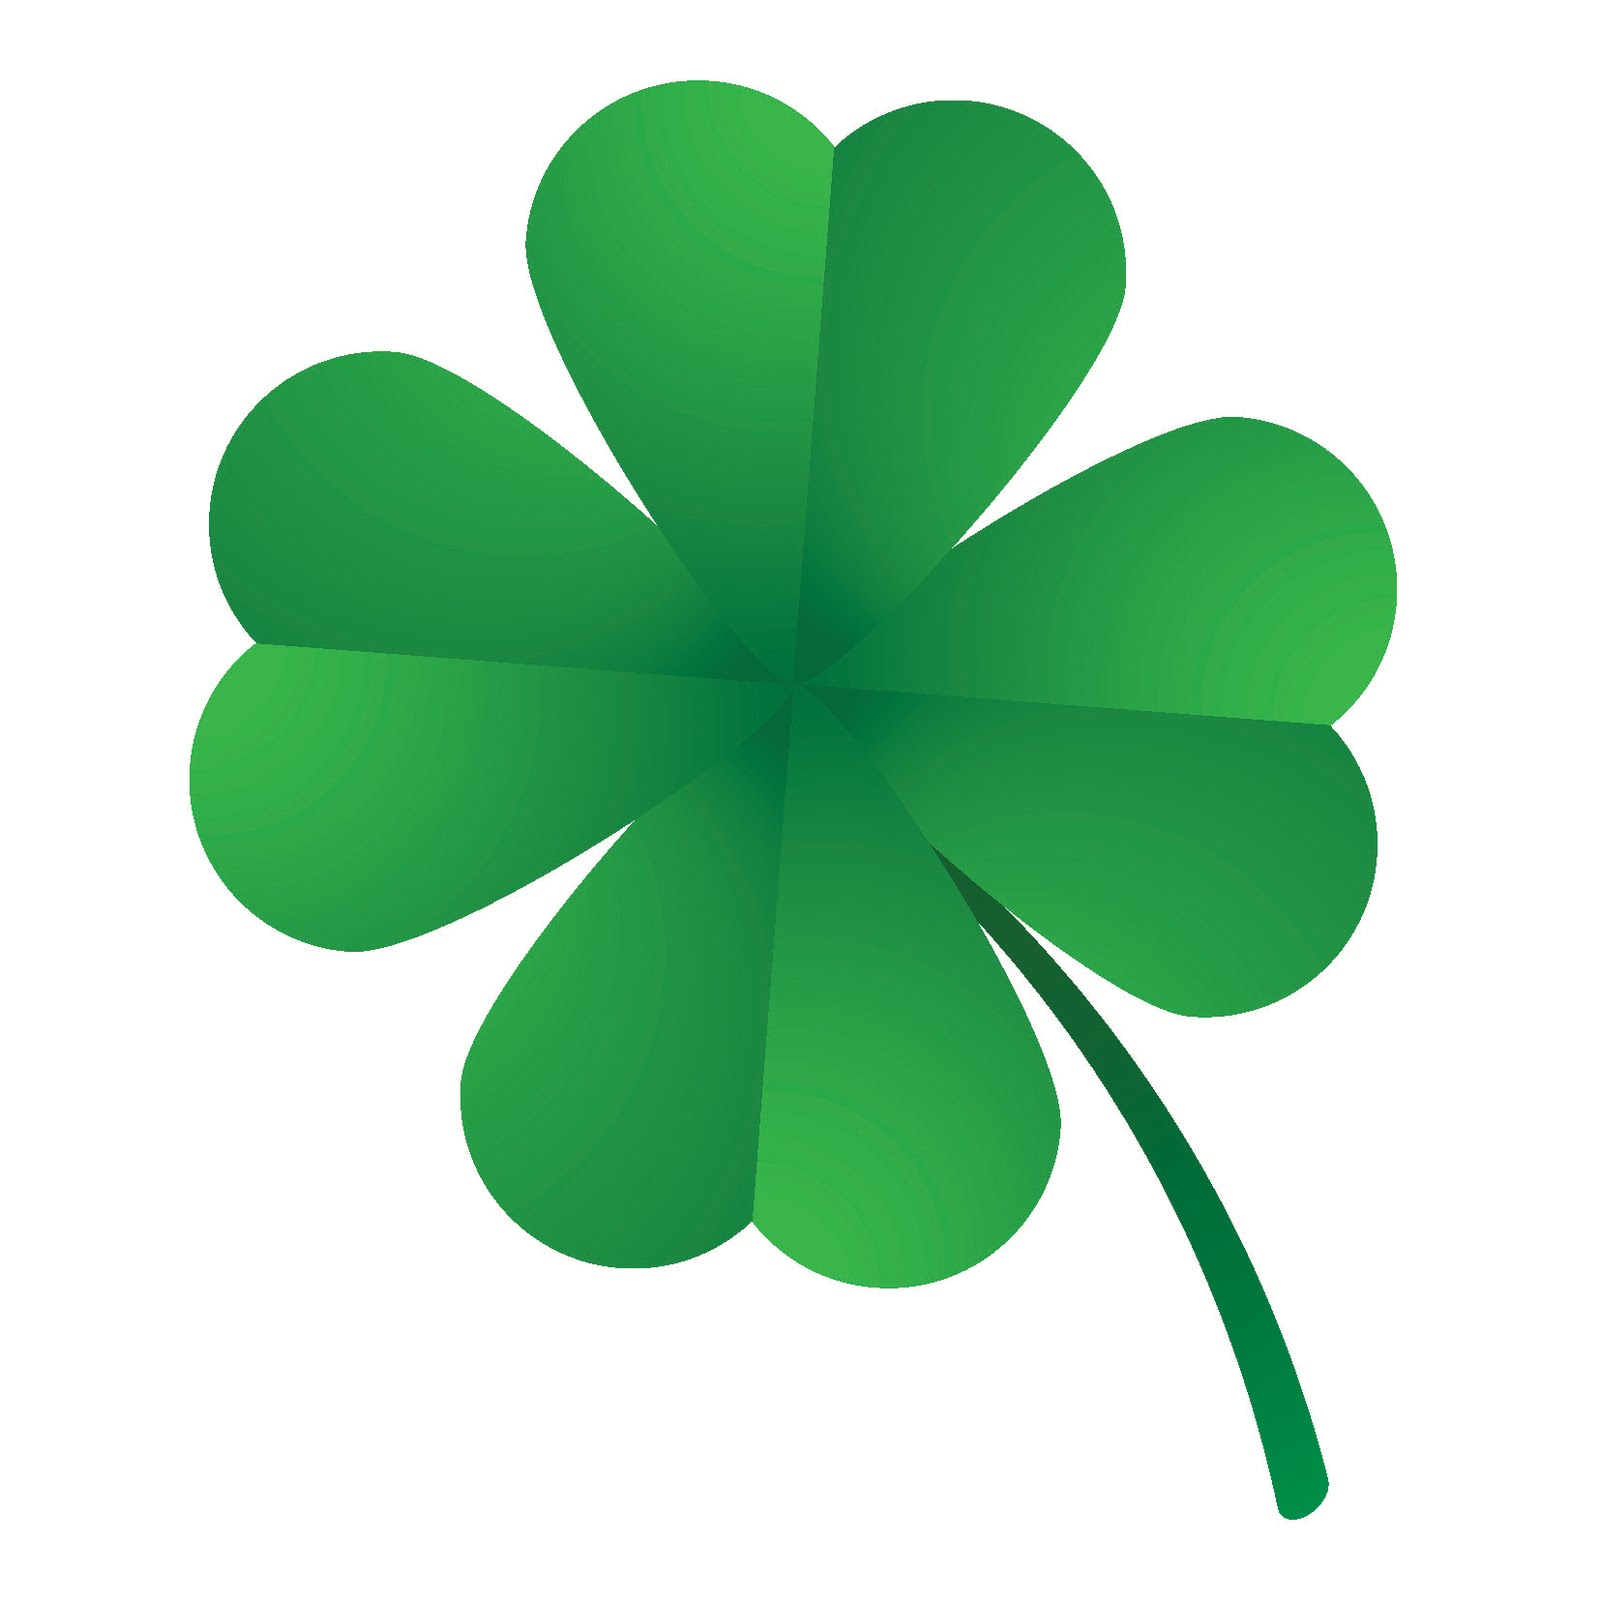 Four Leaf Clover Picture - ClipArt Best